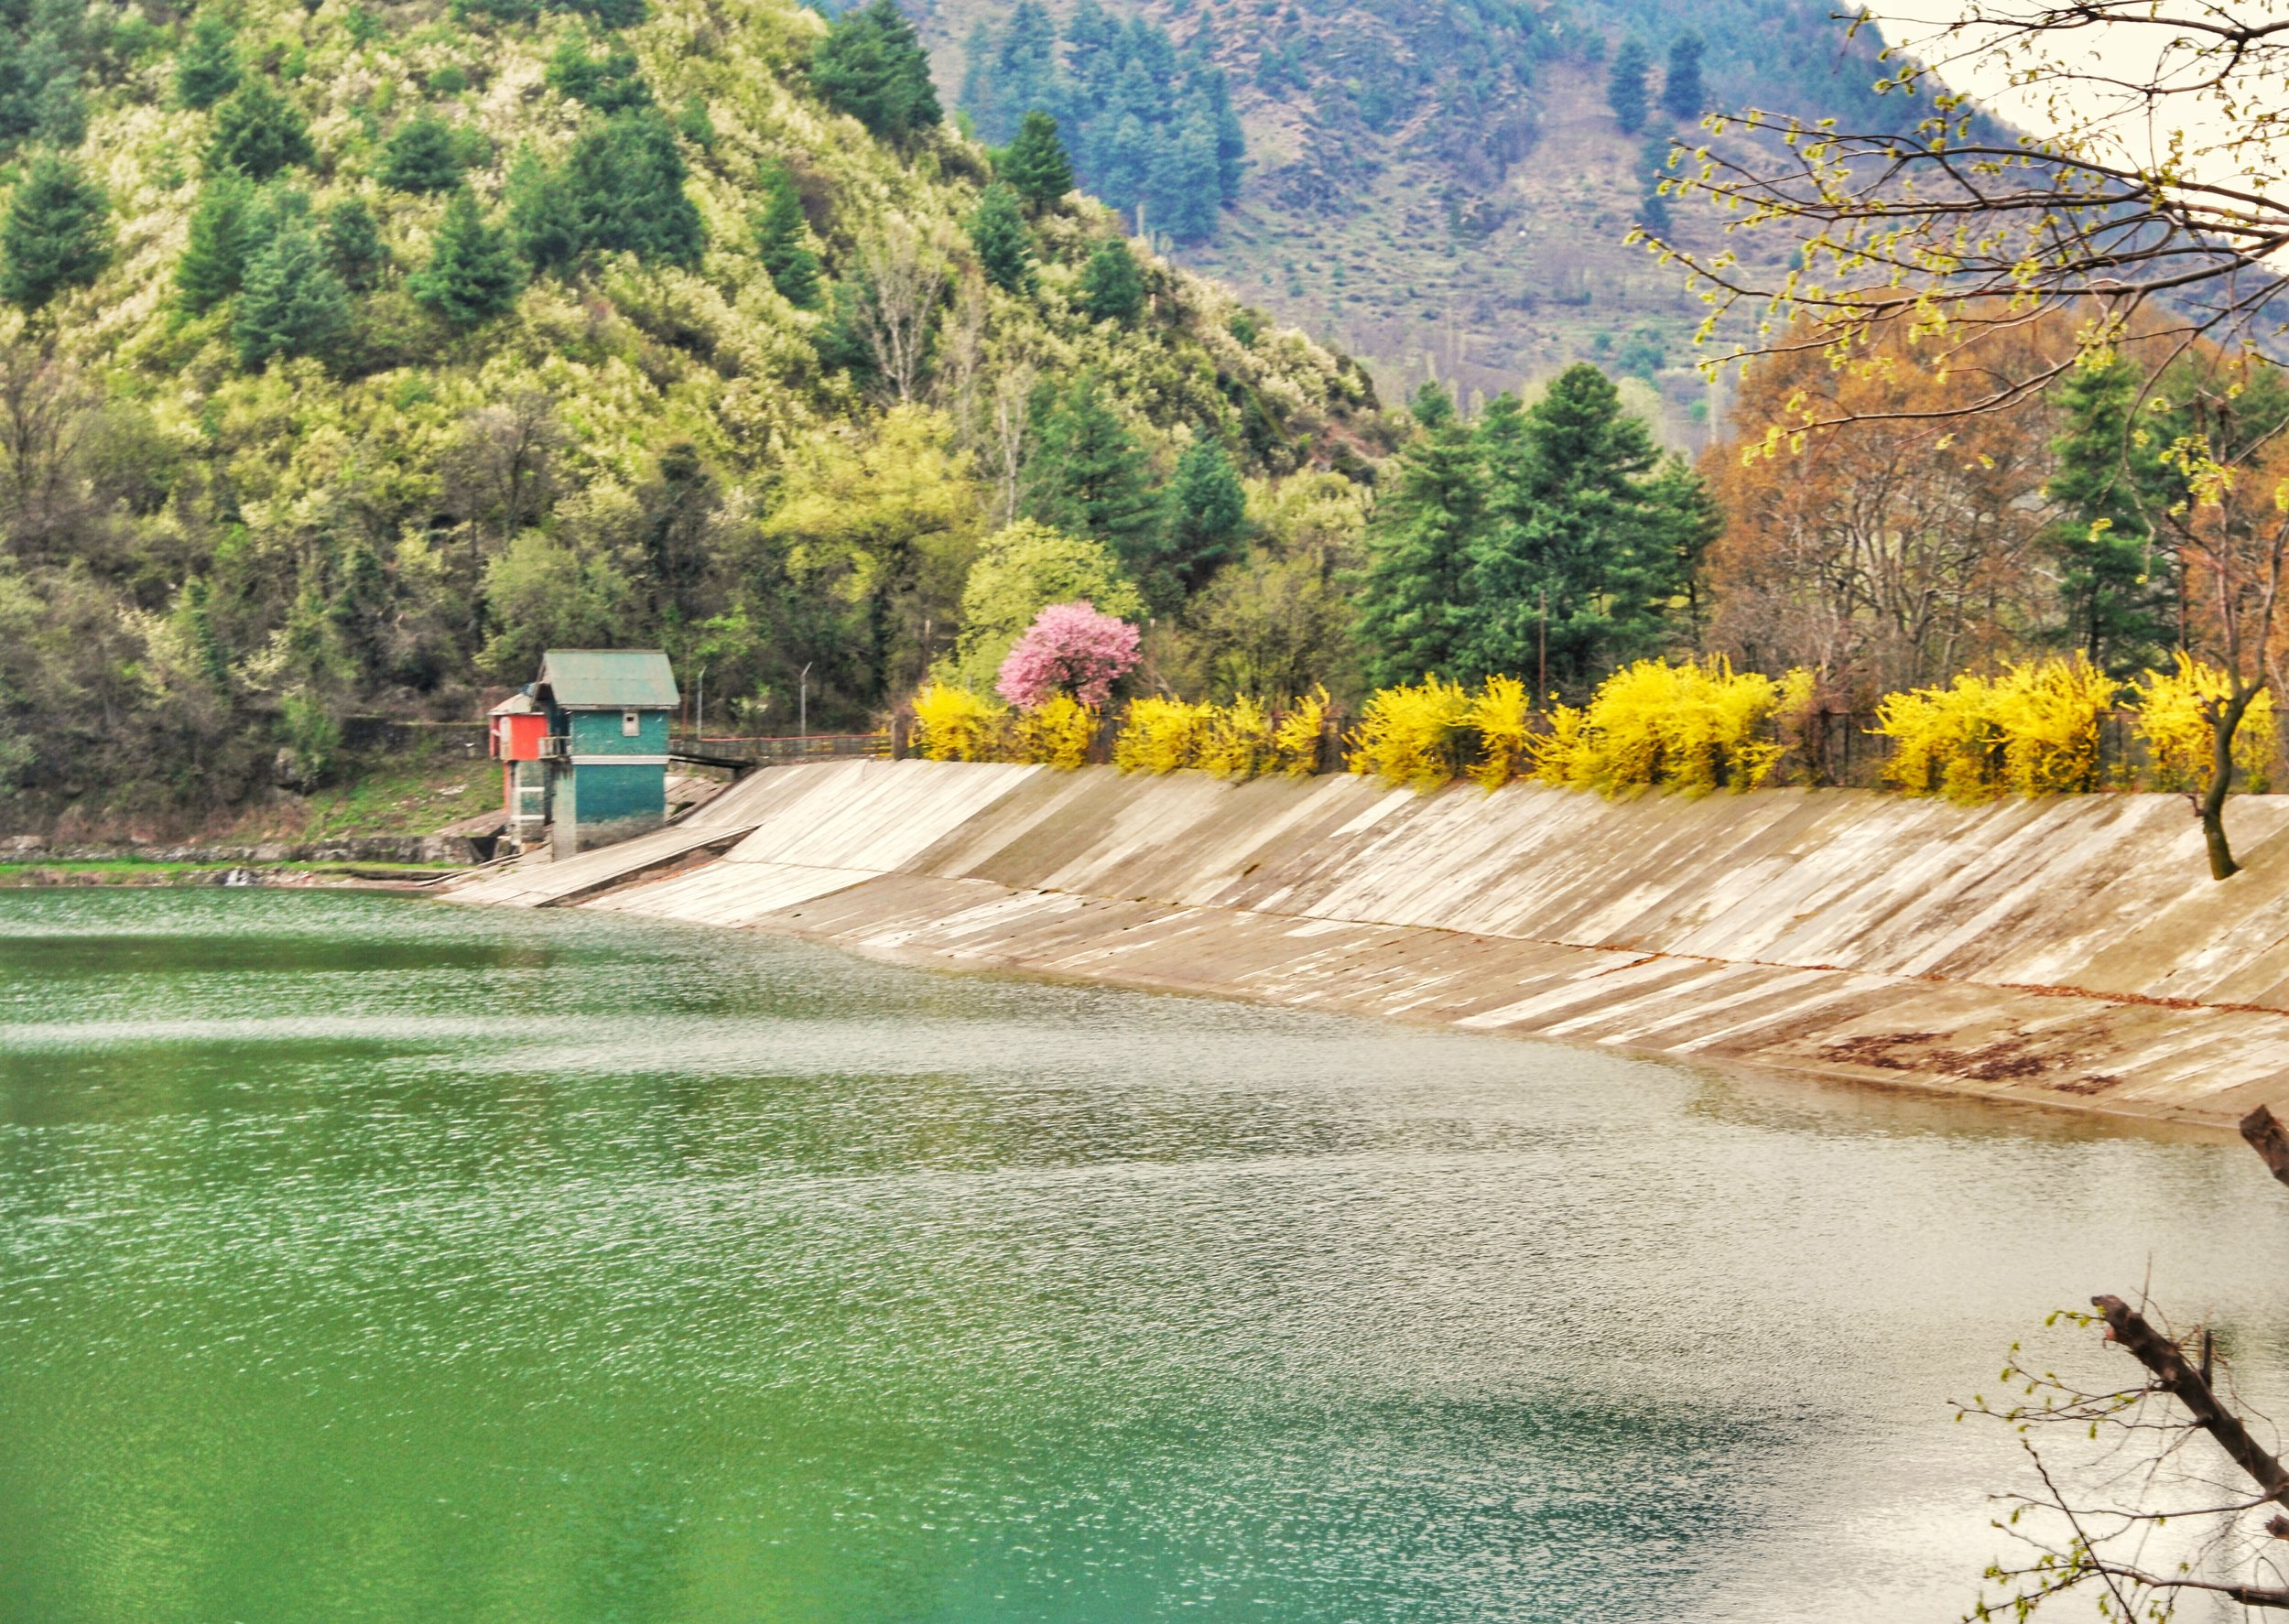 The Sarband Reservoir which lies next to the Dachigam National Park and the Harwan Gardens supplies drinking water to the city of Srinagar